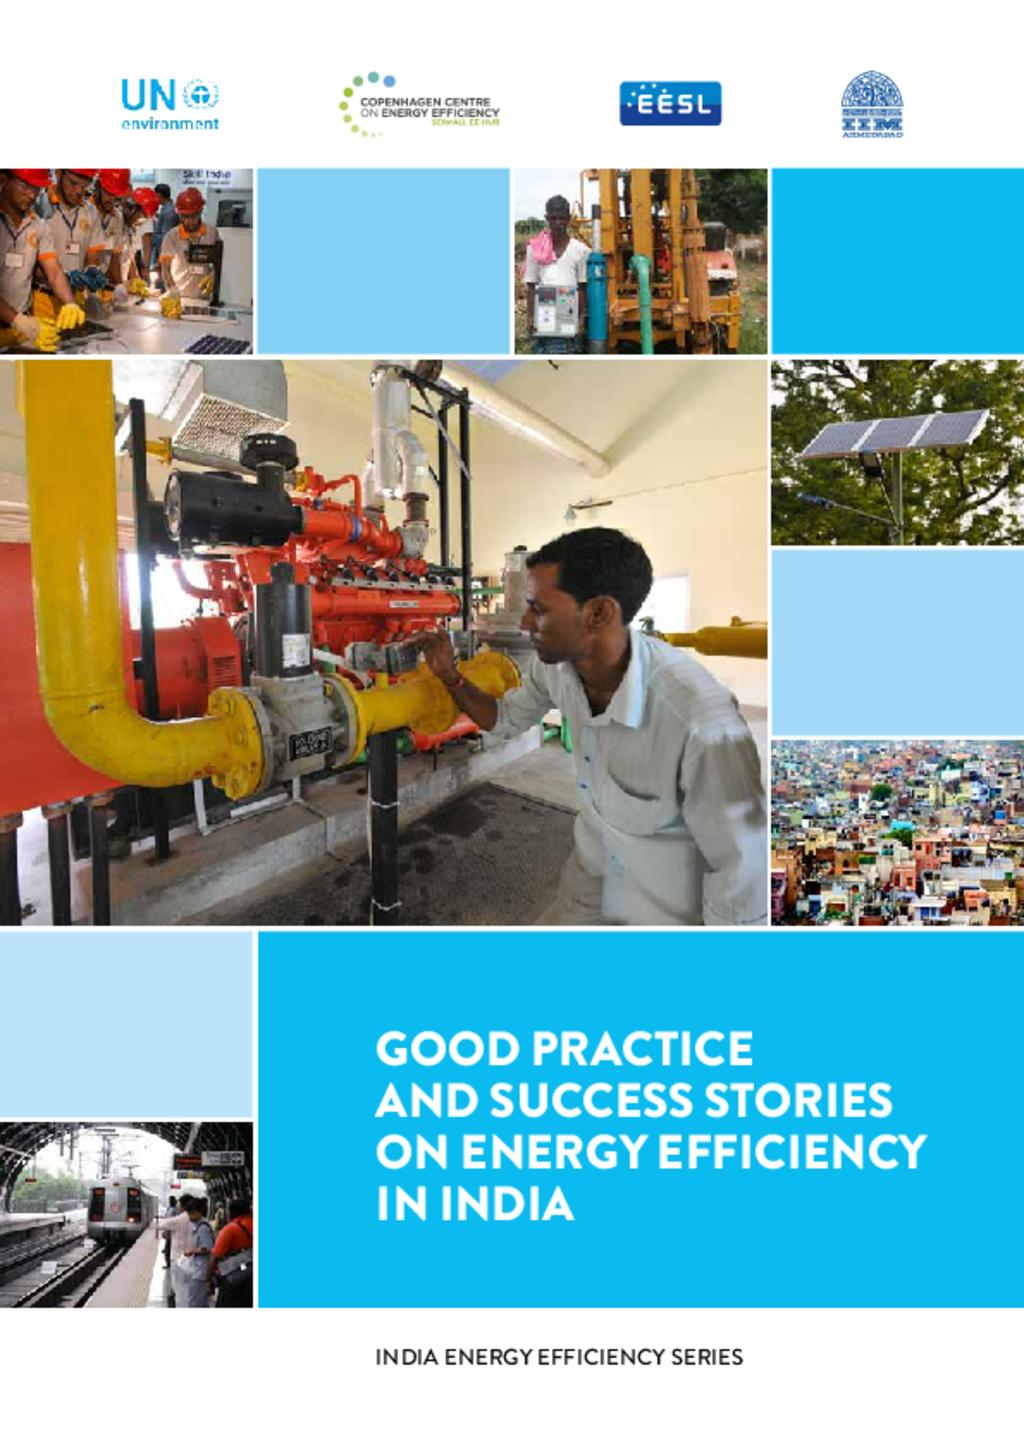 Good practice and success stories on energy efficiency in India